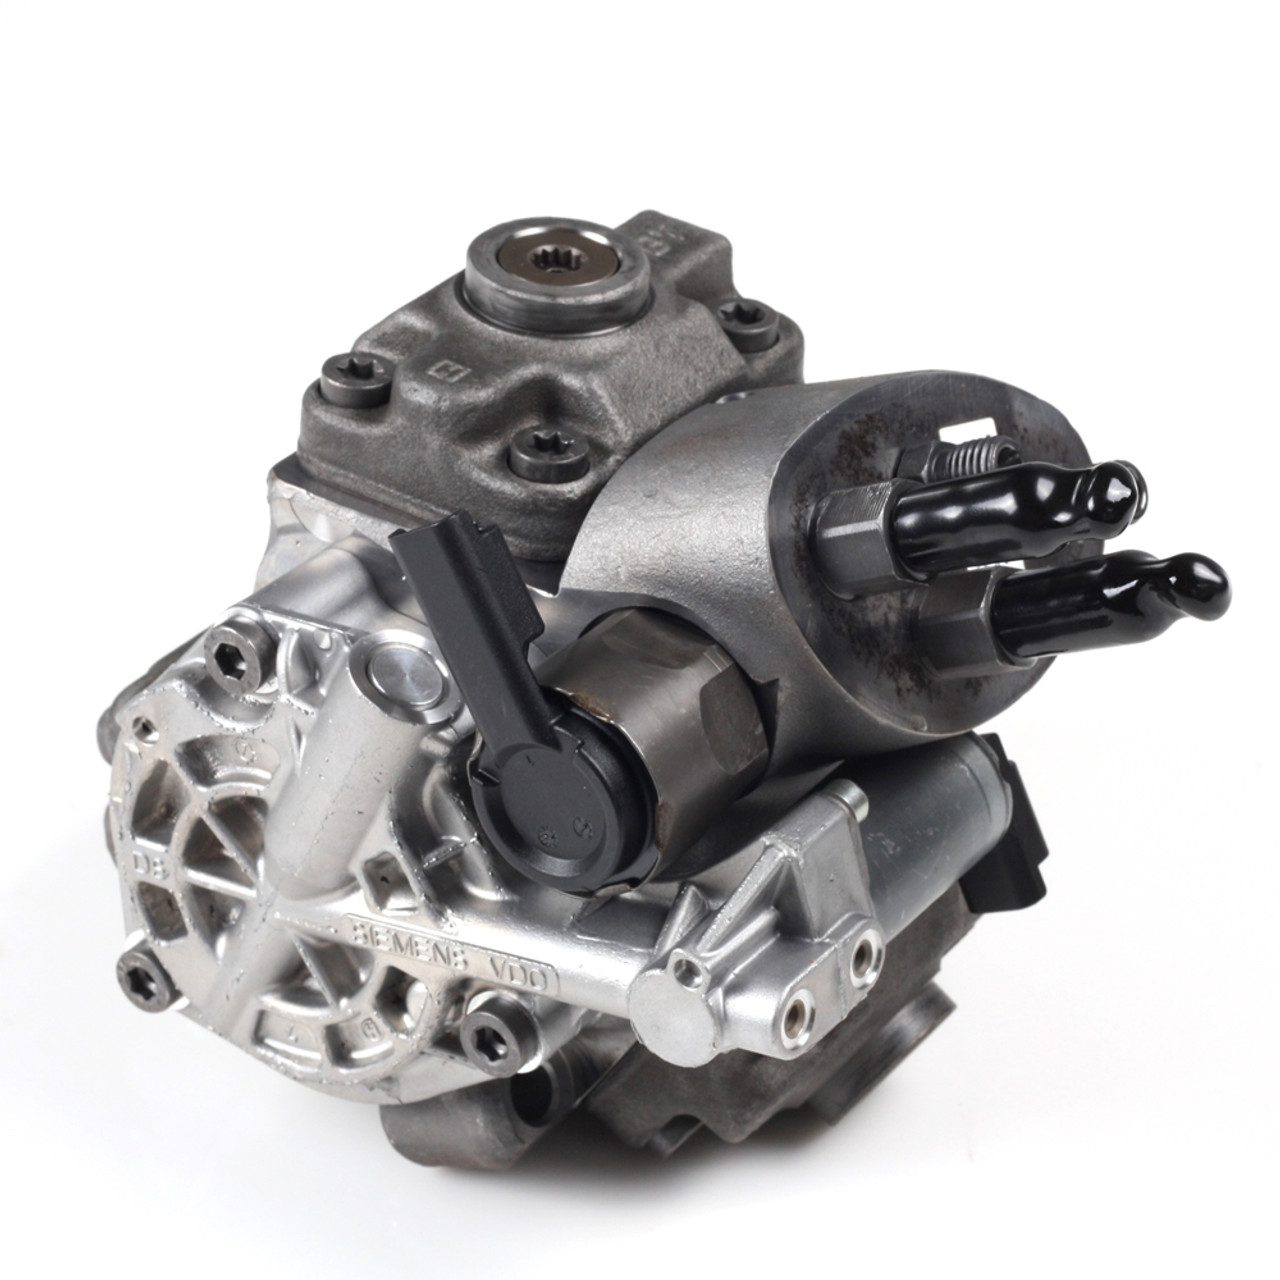 2008-2010 Ford 6 4 Powerstroke Replacement Fuel Injection Pump